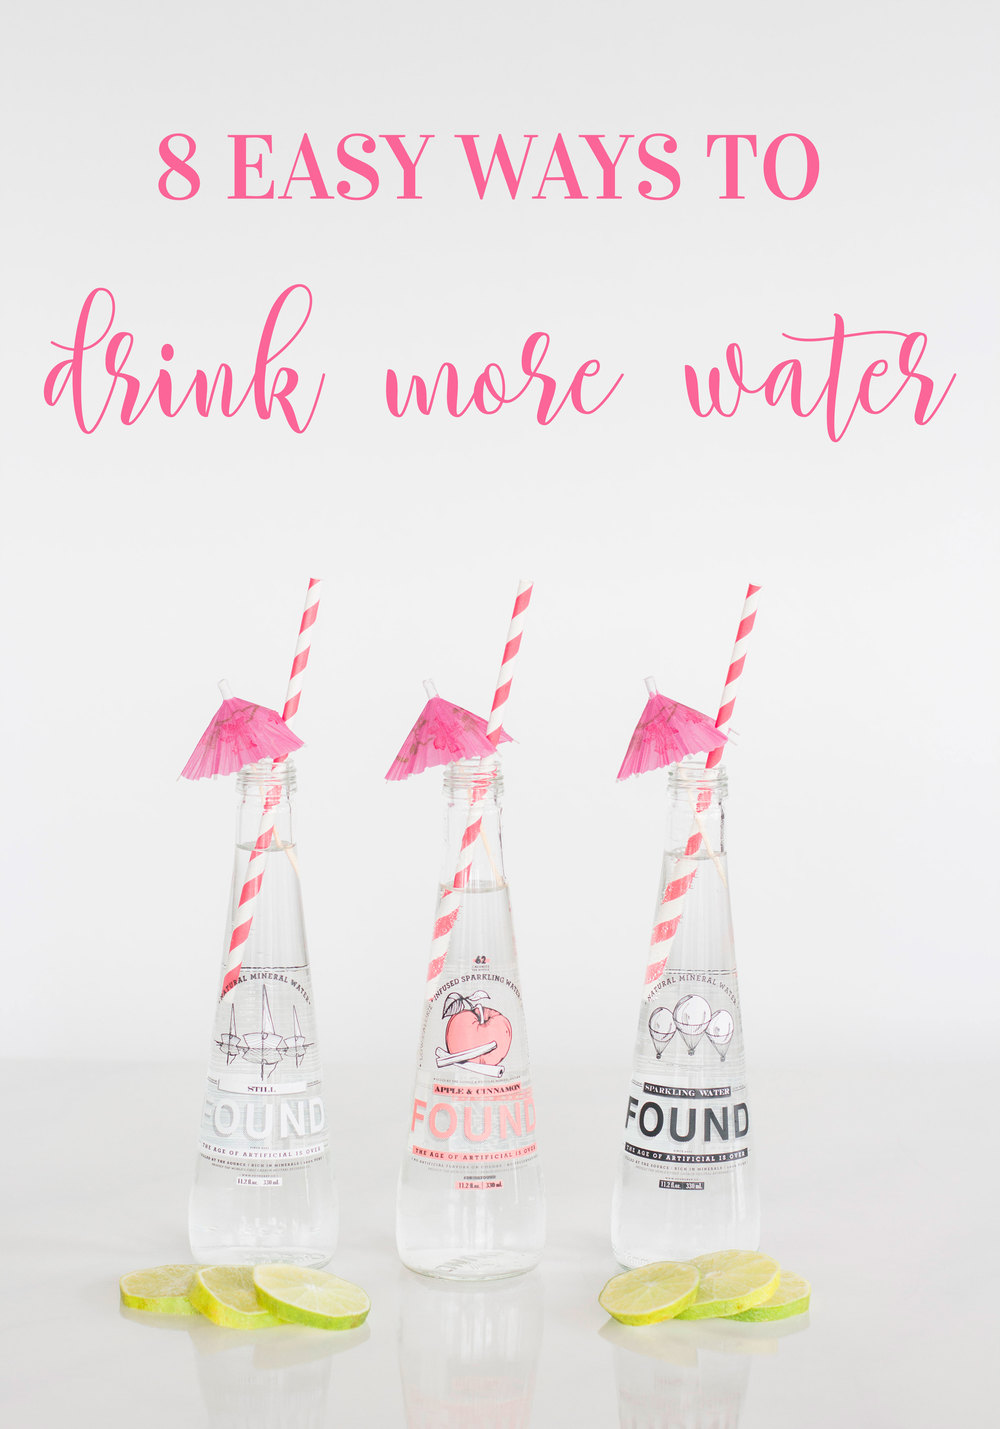 8 easy ways to drink more water everyday on www.me-and-mrjones.com!